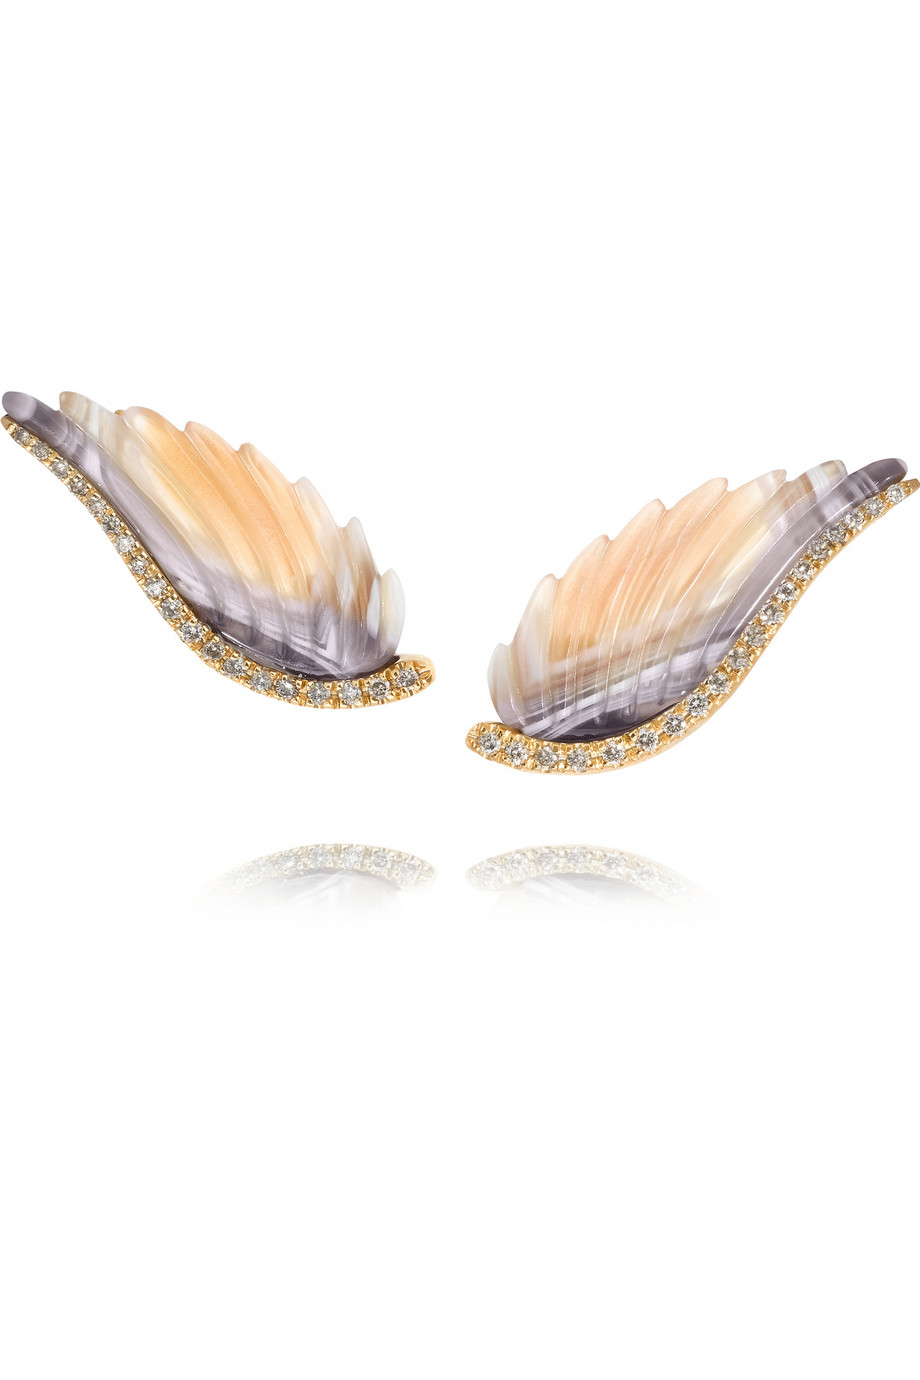 Noor Fares  Wing 18-karat gold, agate and diamond earrings, $4,335,  available at Net-A-Porter .